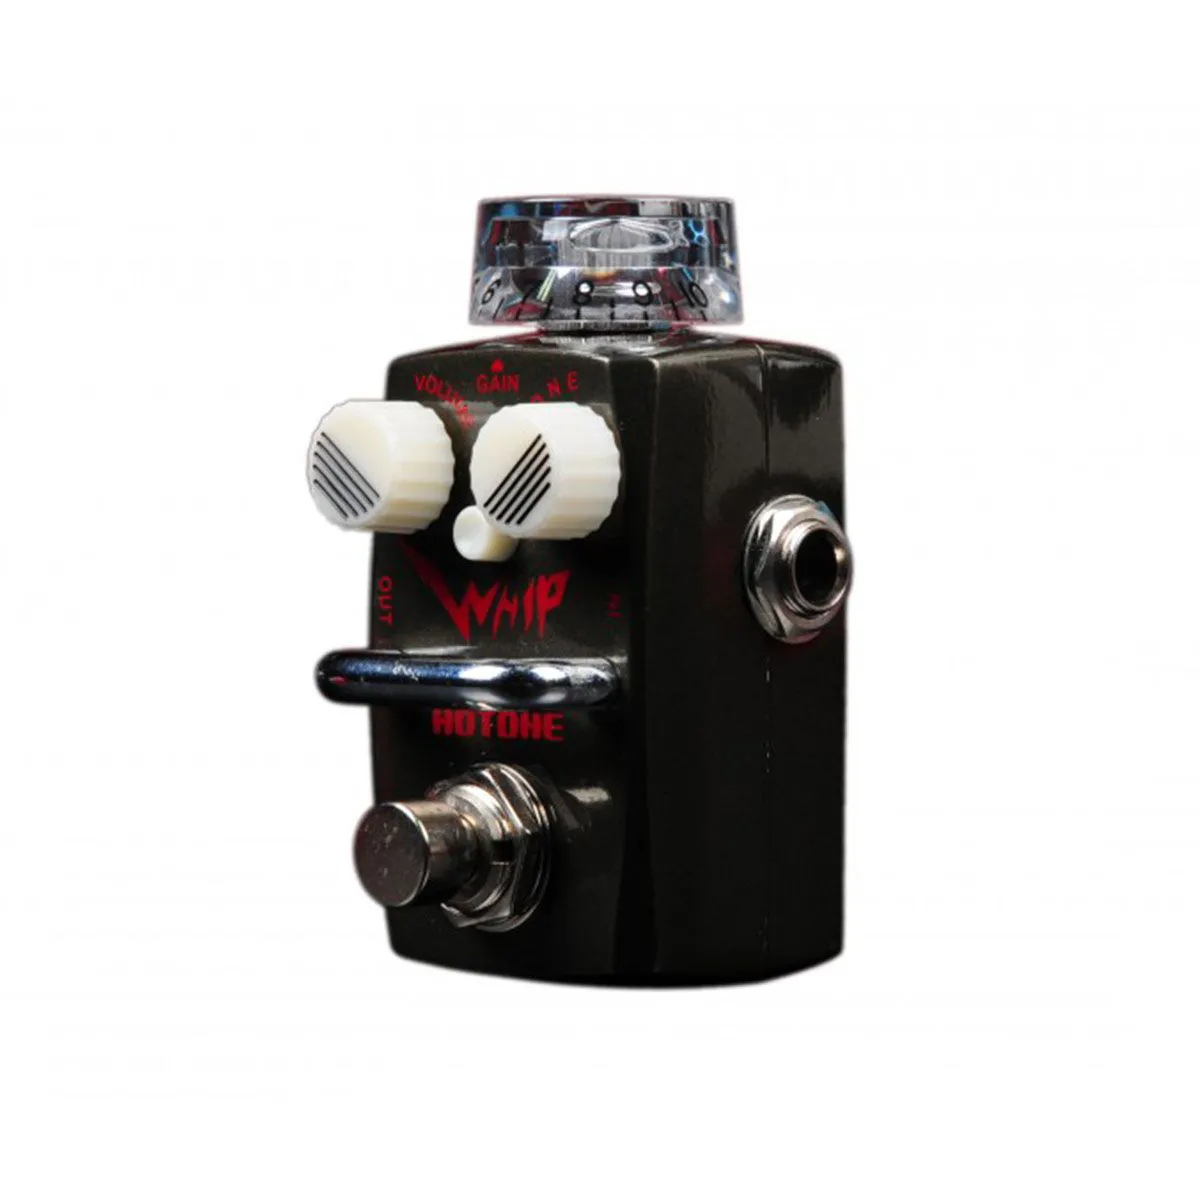 Pedal Hotone Skyline Whip SDS-2 Metal Distortion